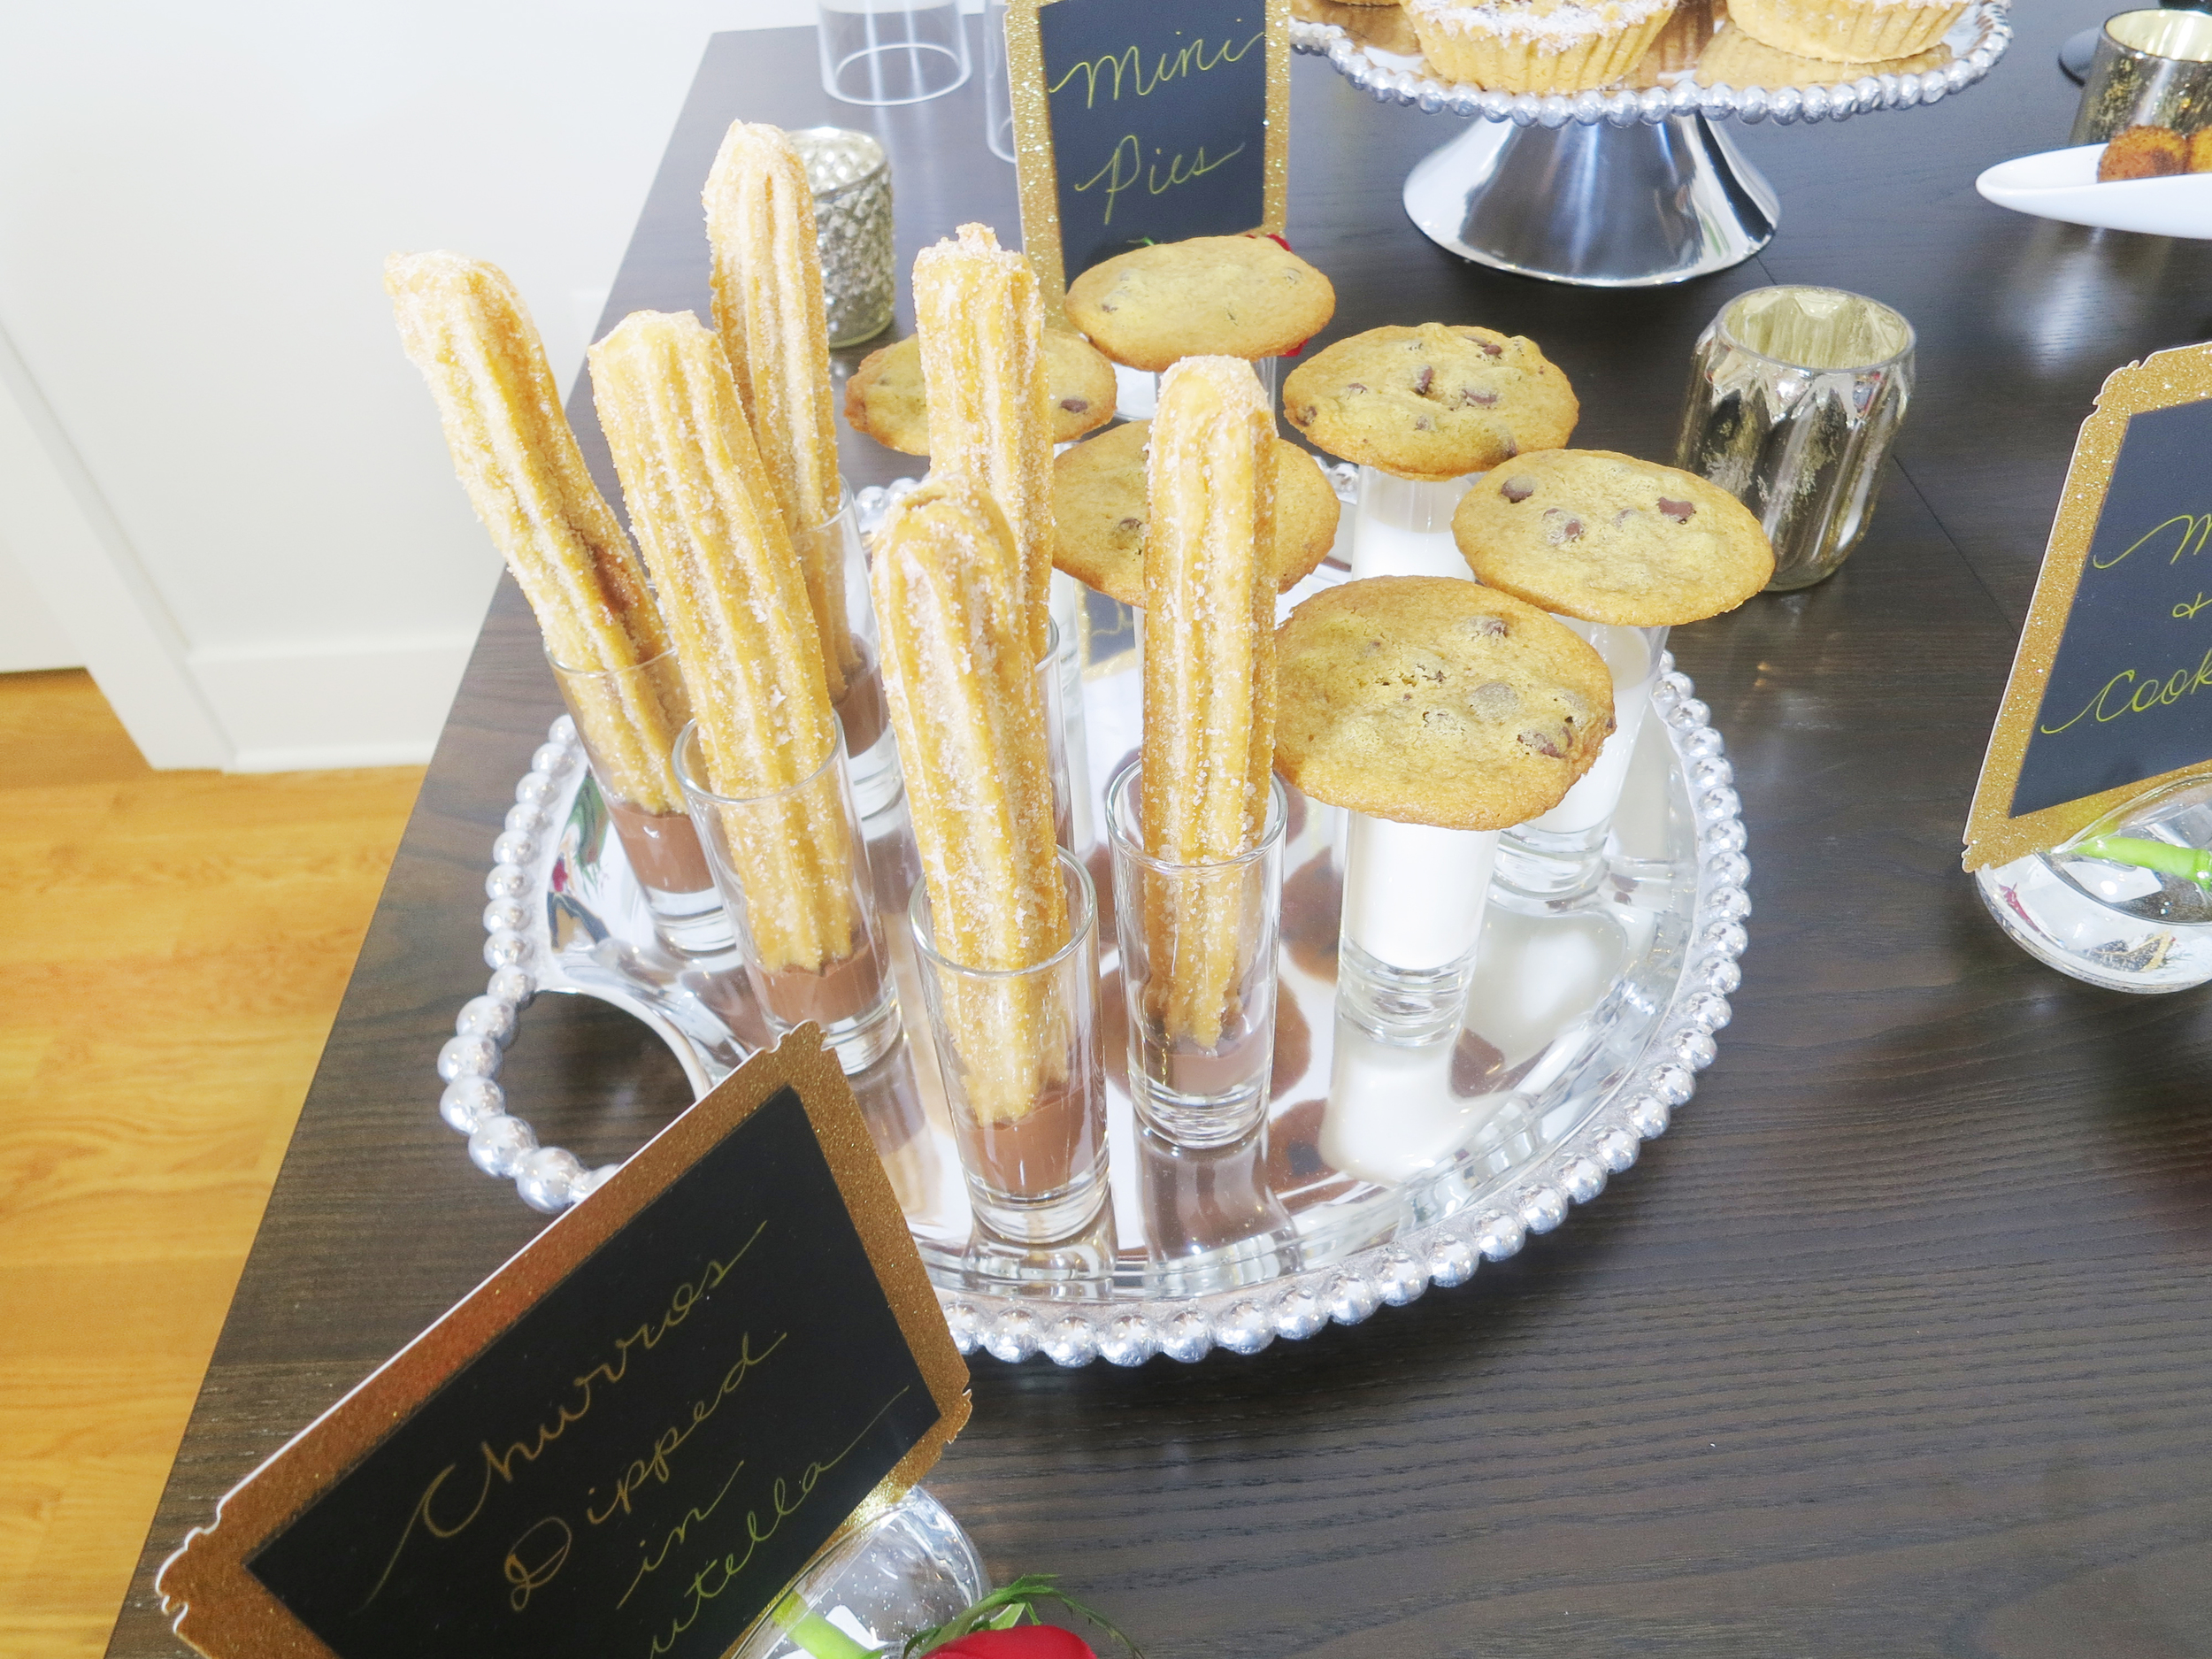 Yummy Churros Dipped in Nutella, Mini Pies, Milk and Cookies will definitely have your guests gaga.